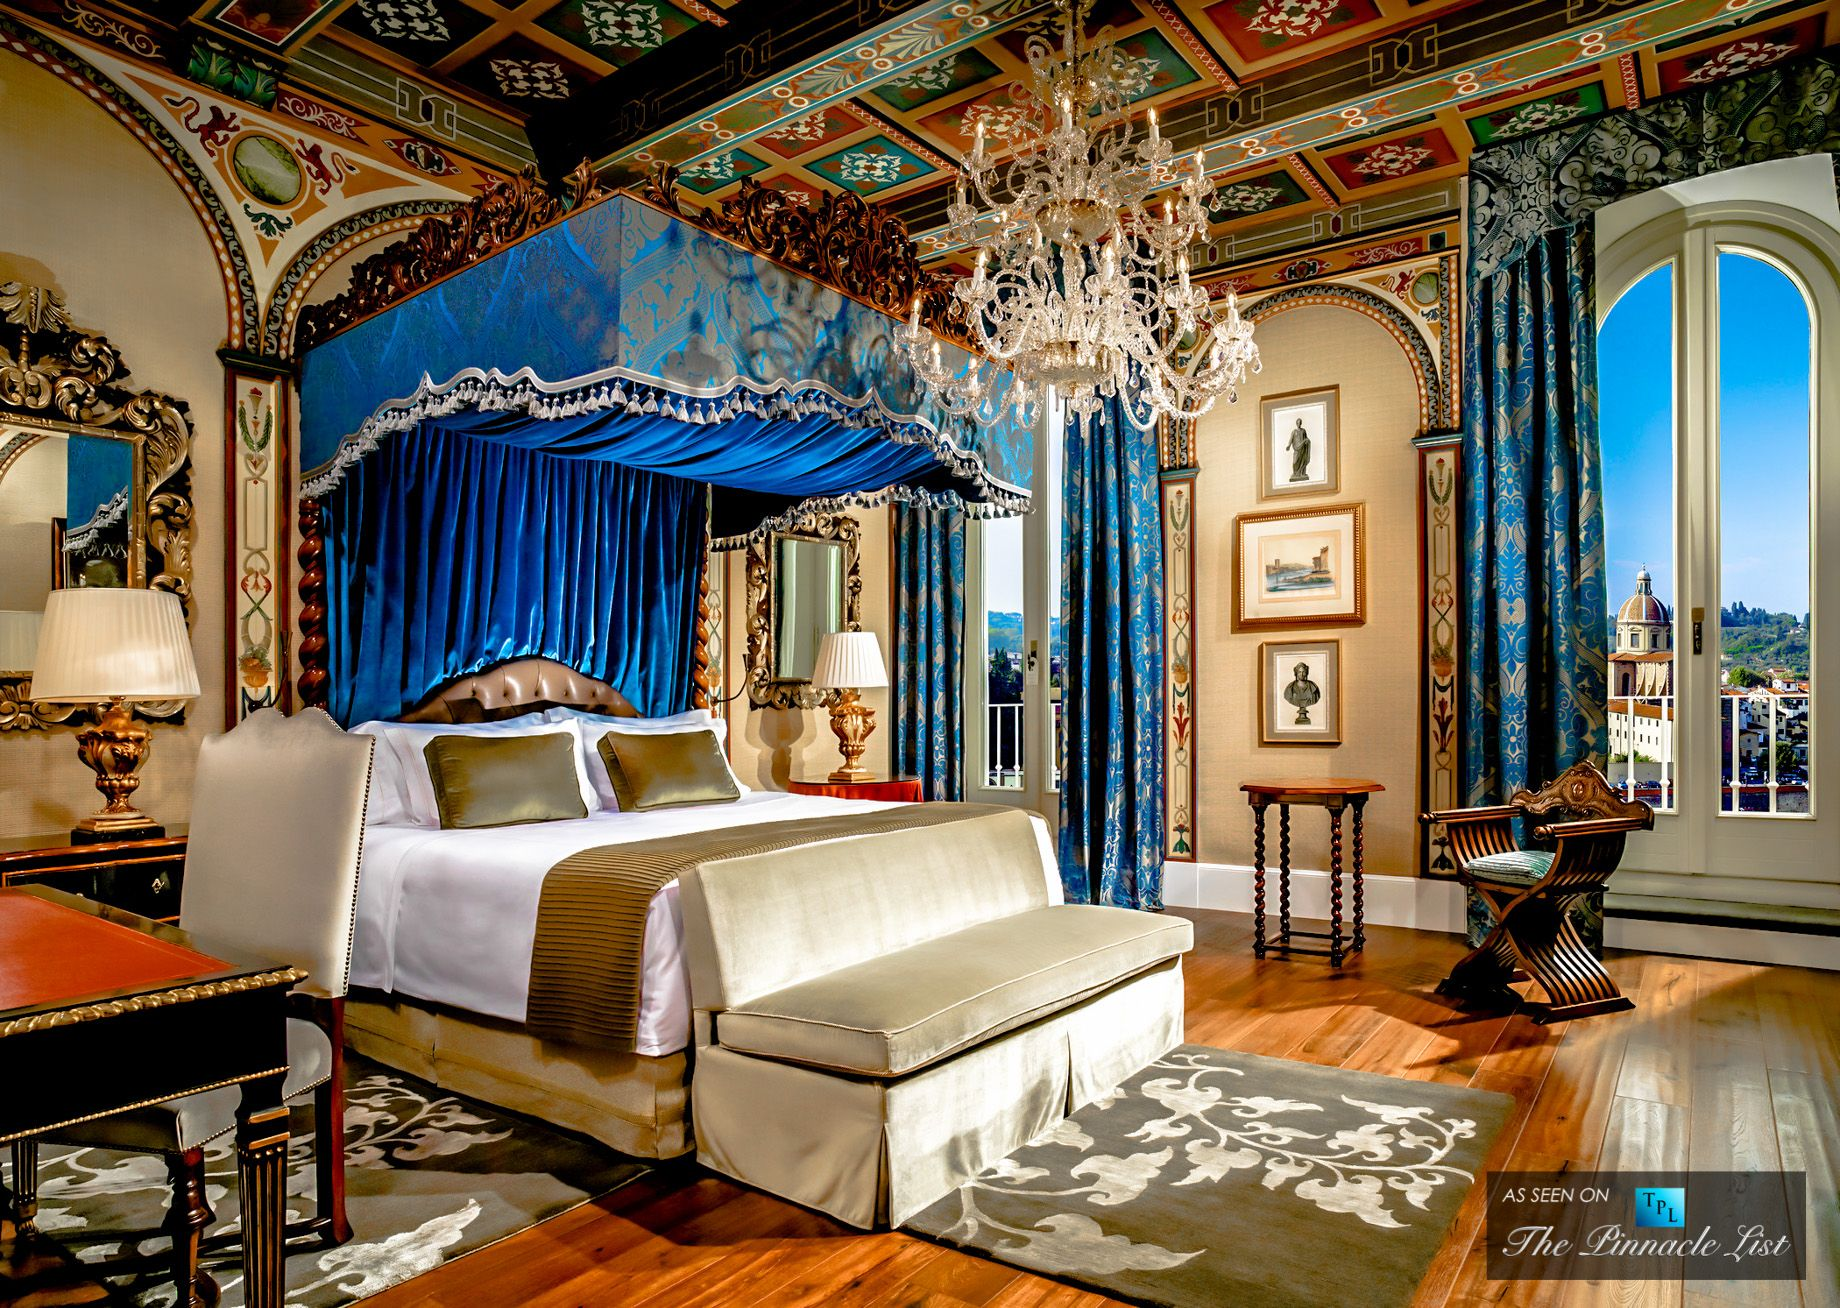 St regis luxury hotel florence italy royal suite for Design hotel florence italy